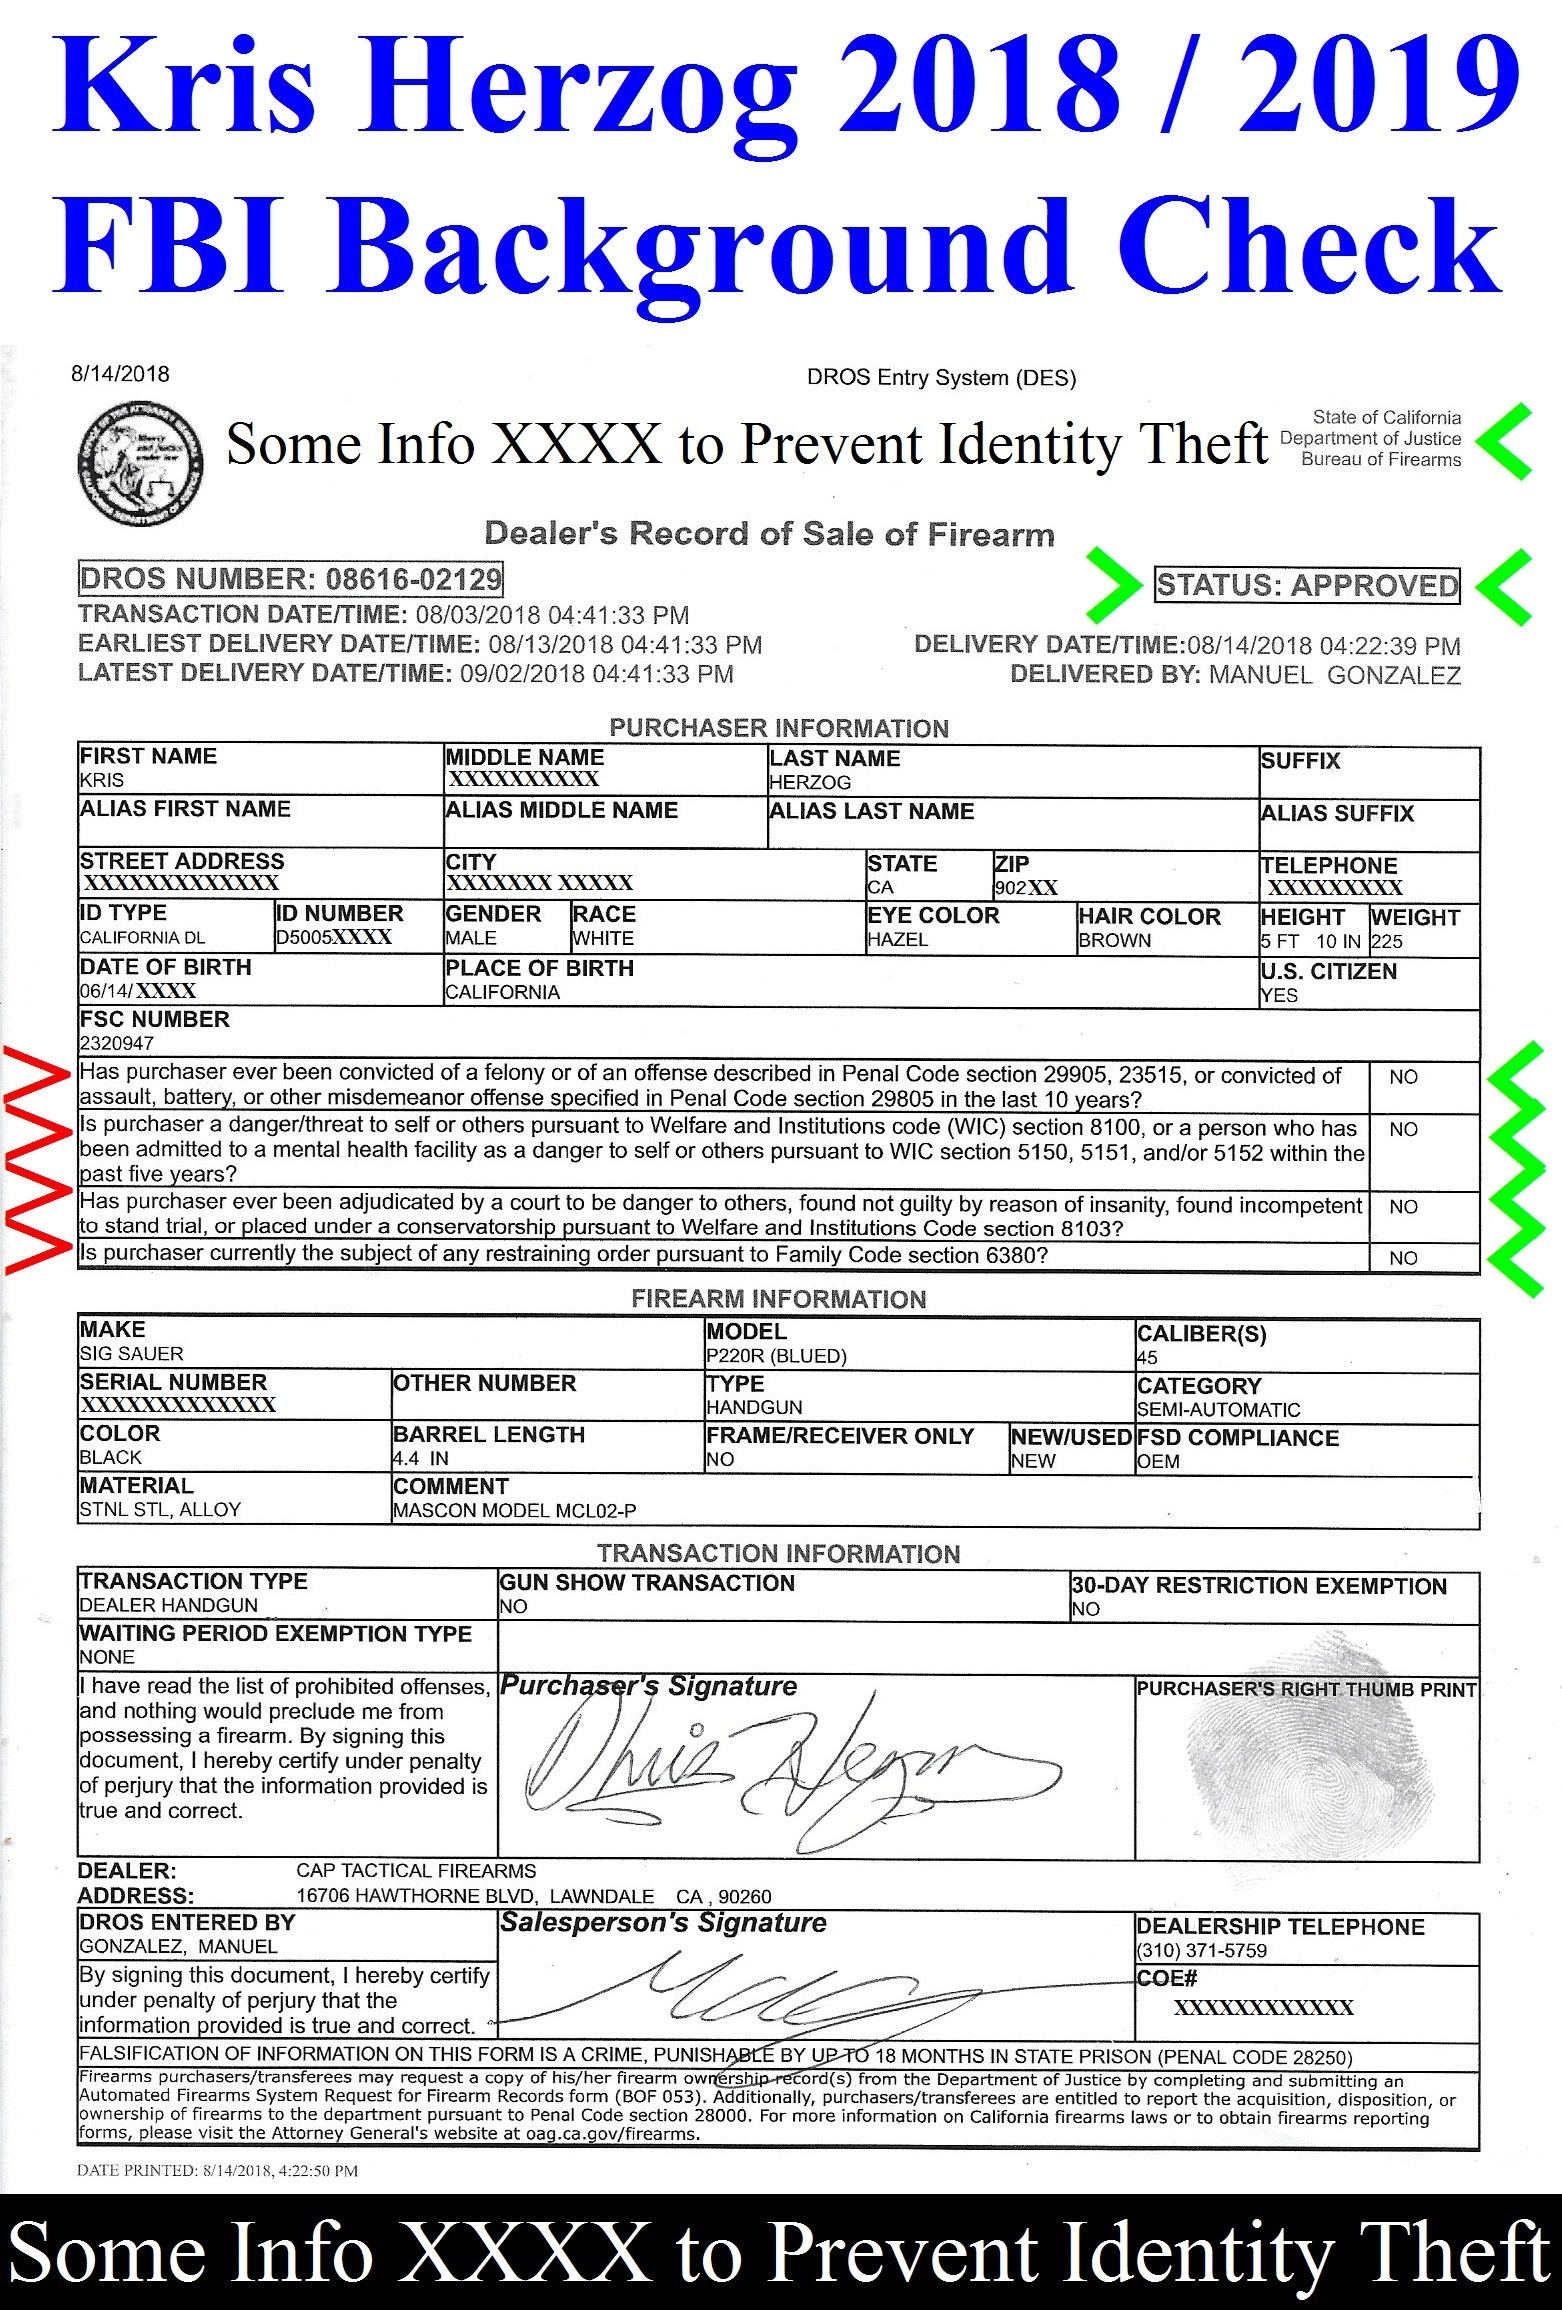 KRIS HERZOG FBI BACKGROUND CHECK FOR GUN PURAHASCE AND REGISTRATION The Bodyguard Group of Beverly Hills 90210